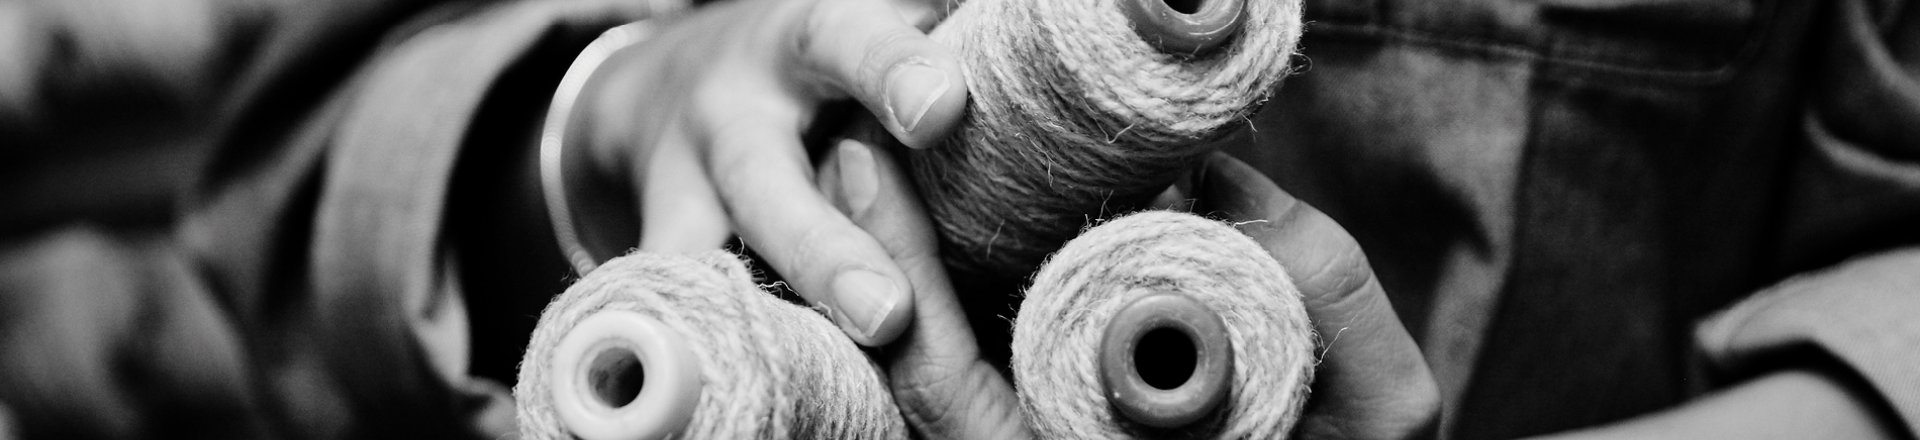 Careers at Axminster Carpets